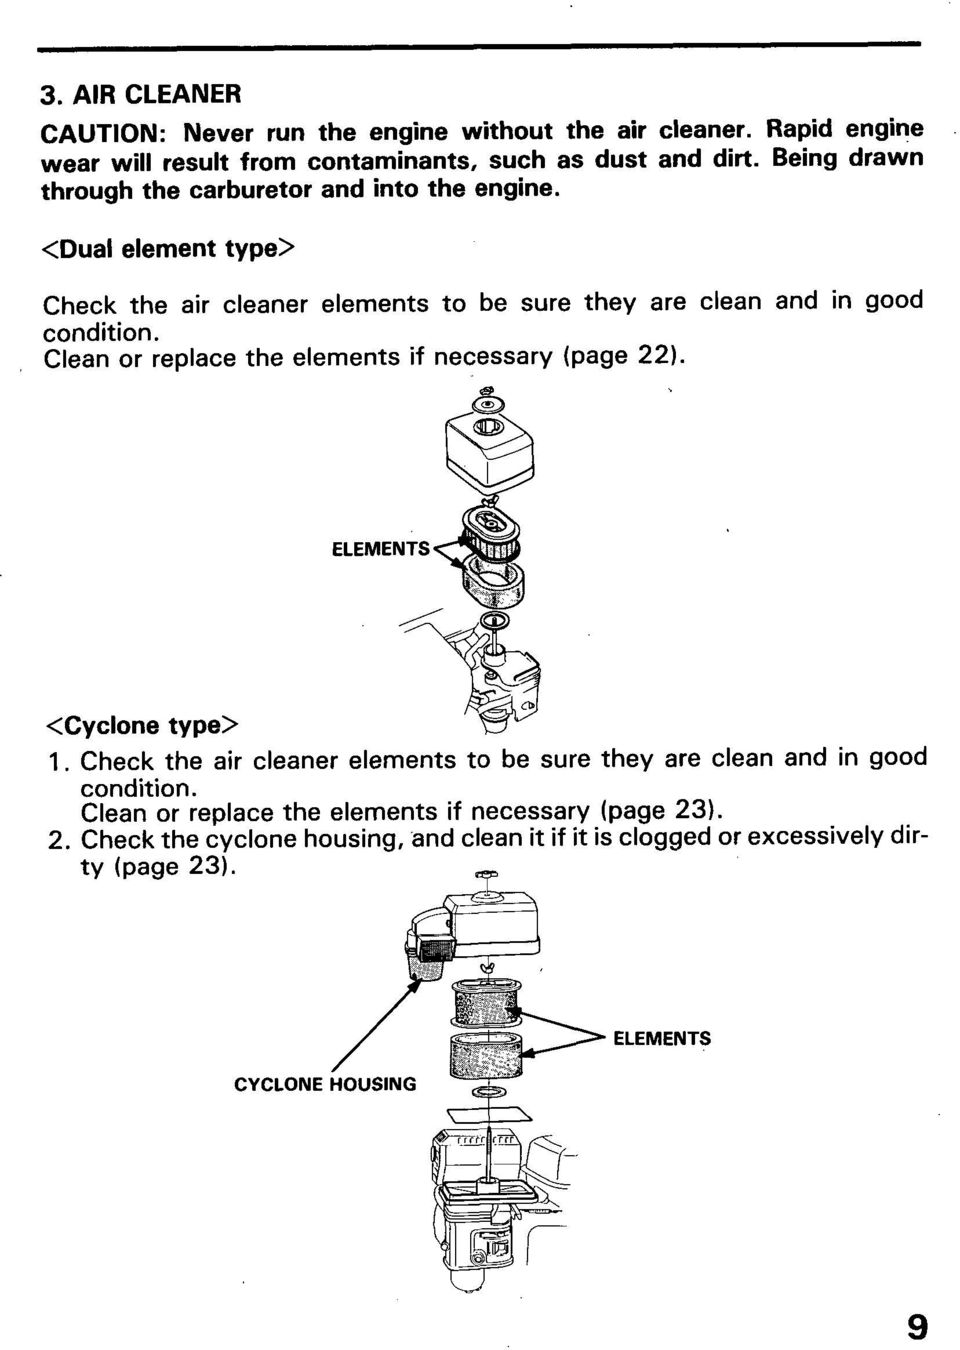 Click Save To This Manual Your Computer Thank You For Diagram Of All Years Eu3000is A Honda Generator Carburetor And Dual Element Type Check The Air Cleaner Elements Be Sure They Are Clean